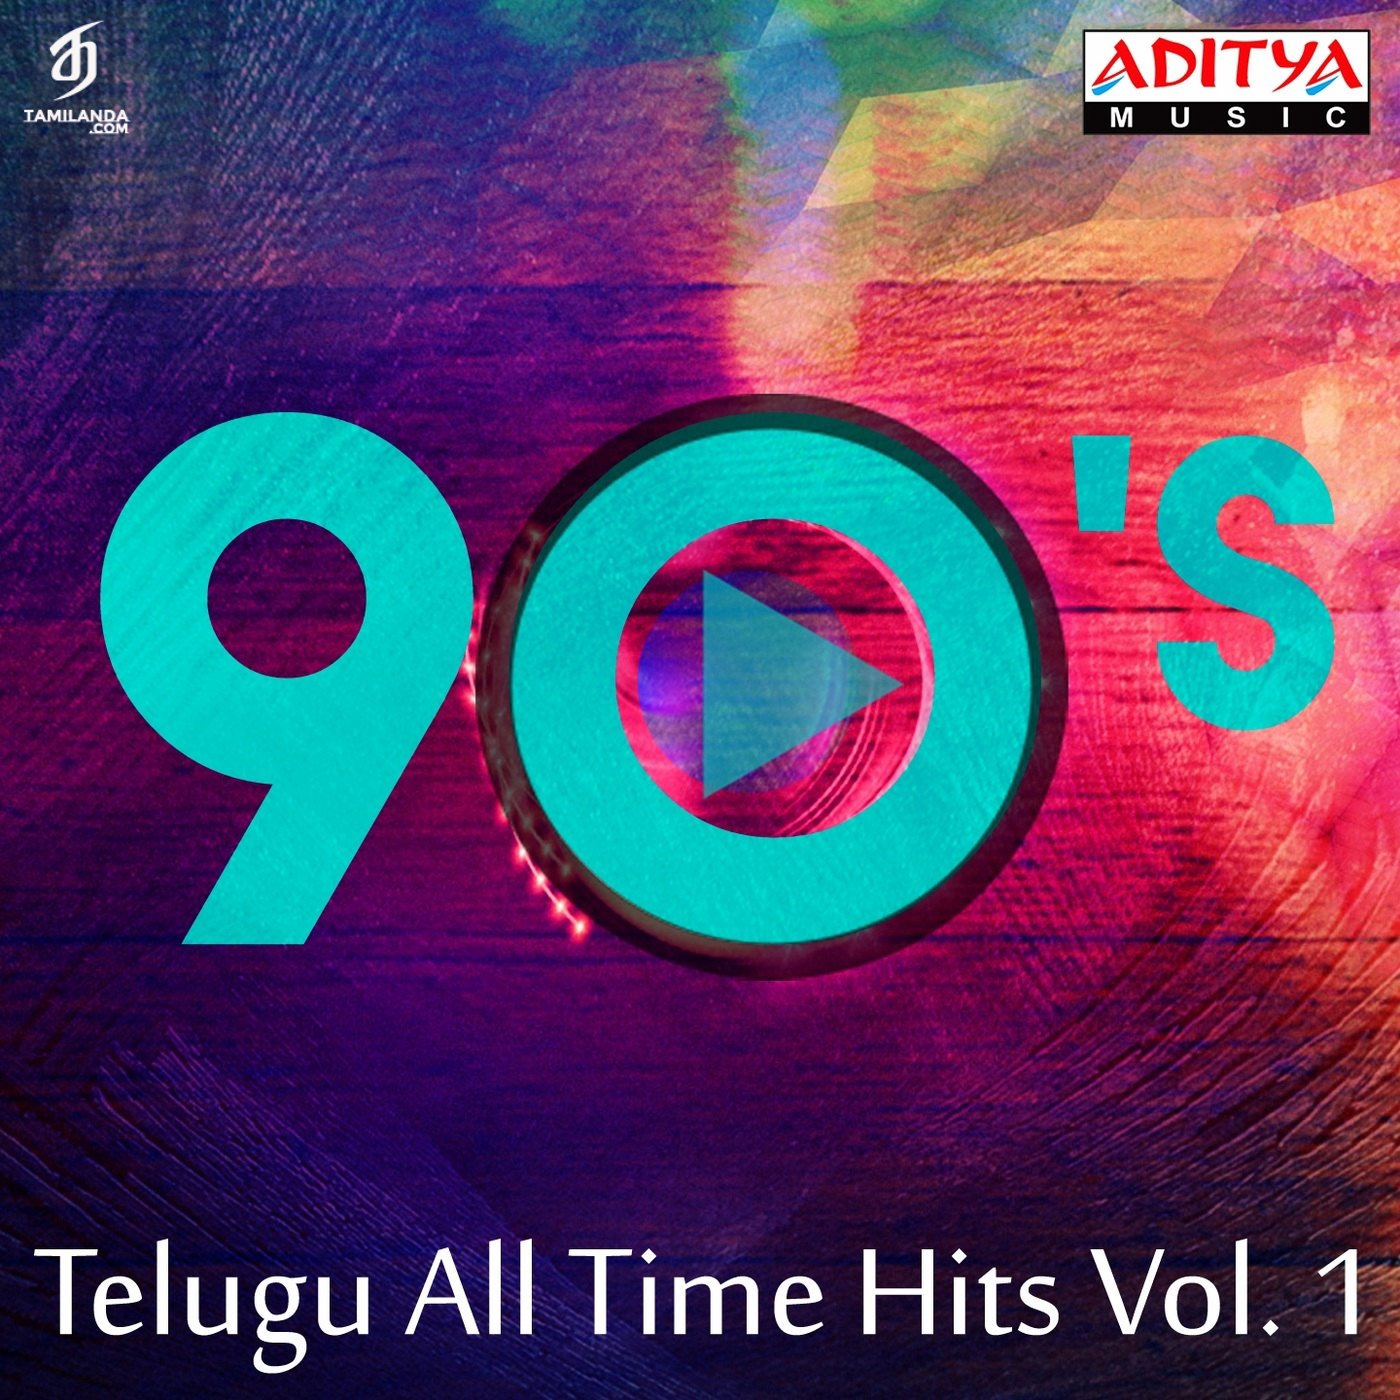 90's Telugu All Time Hits Vol. 1 16 BIT FLAC Songs